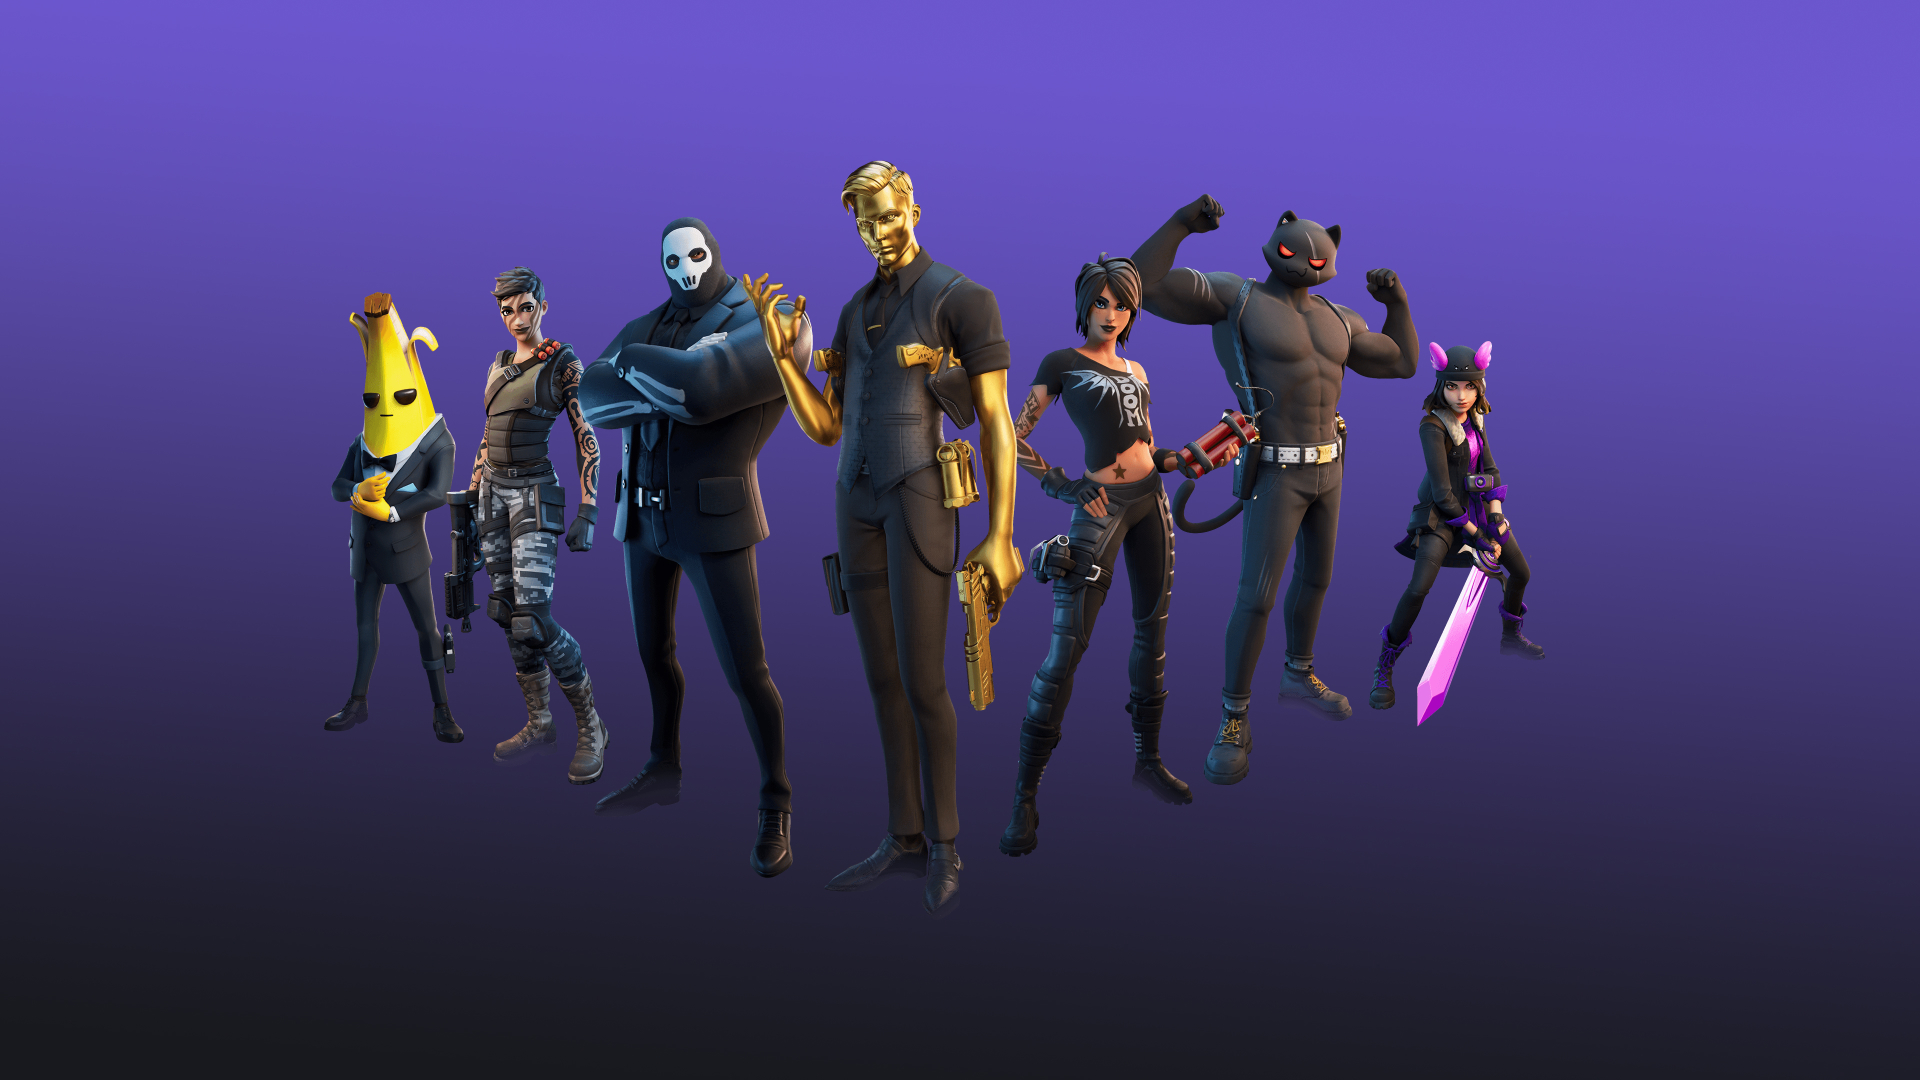 1920x1080 Fortnite Battle Royale Chapter 2 Season 2 1080p Laptop Full Hd Wallpaper Hd Games 4k Wallpapers Images Photos And Background